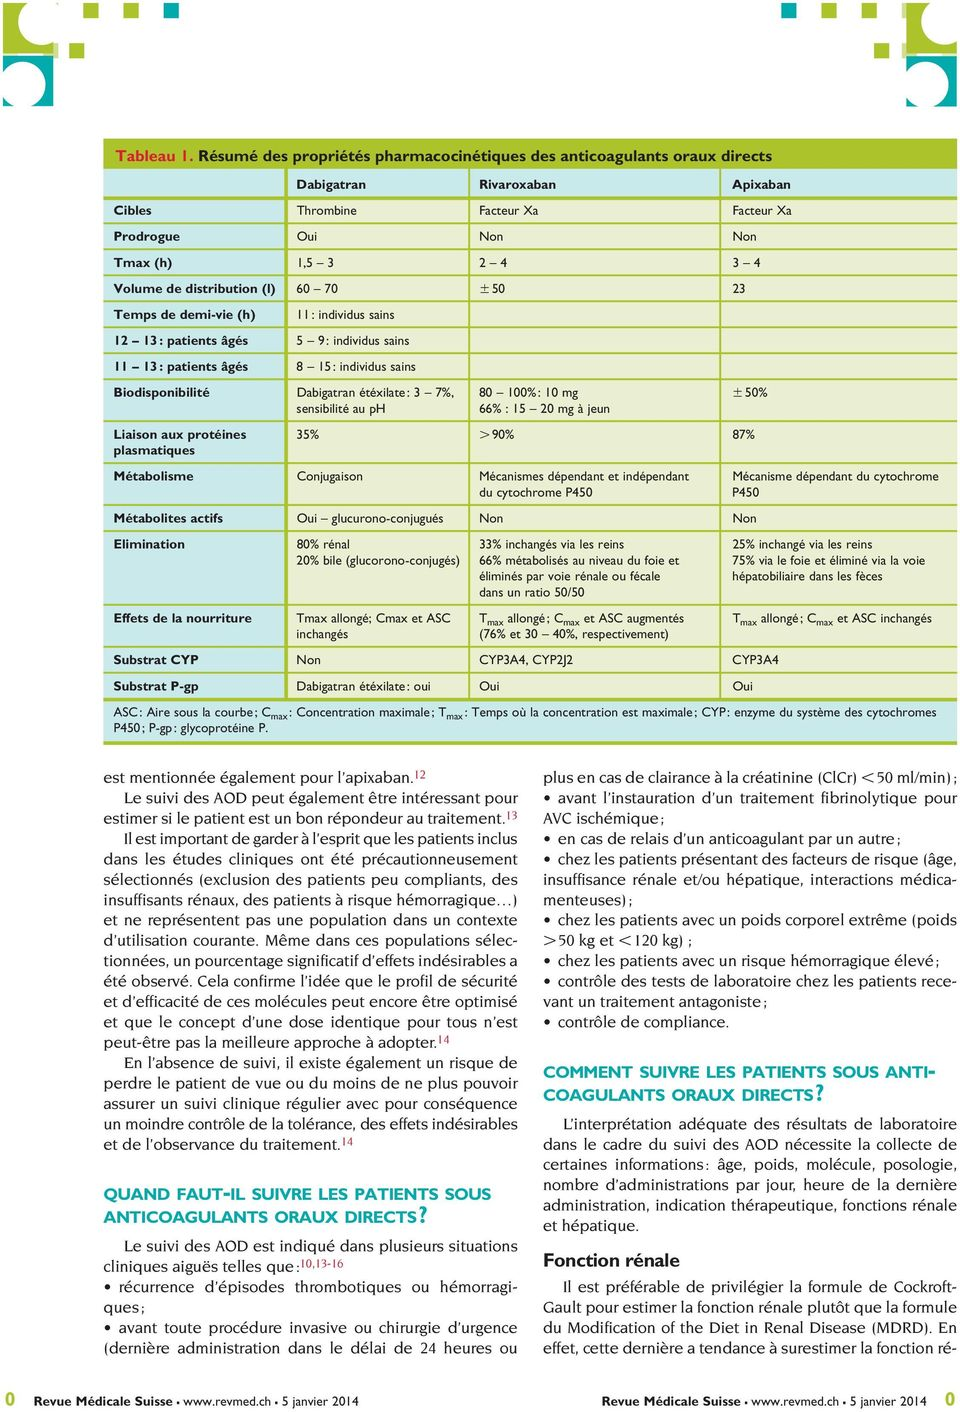 distribution (l) 60 70 w 50 23 Temps de demi-vie (h) 11 : individus sains 12 13 : patients âgés 5 9 : individus sains 11 13 : patients âgés 8 15 : individus sains Biodisponibilité Dabigatran